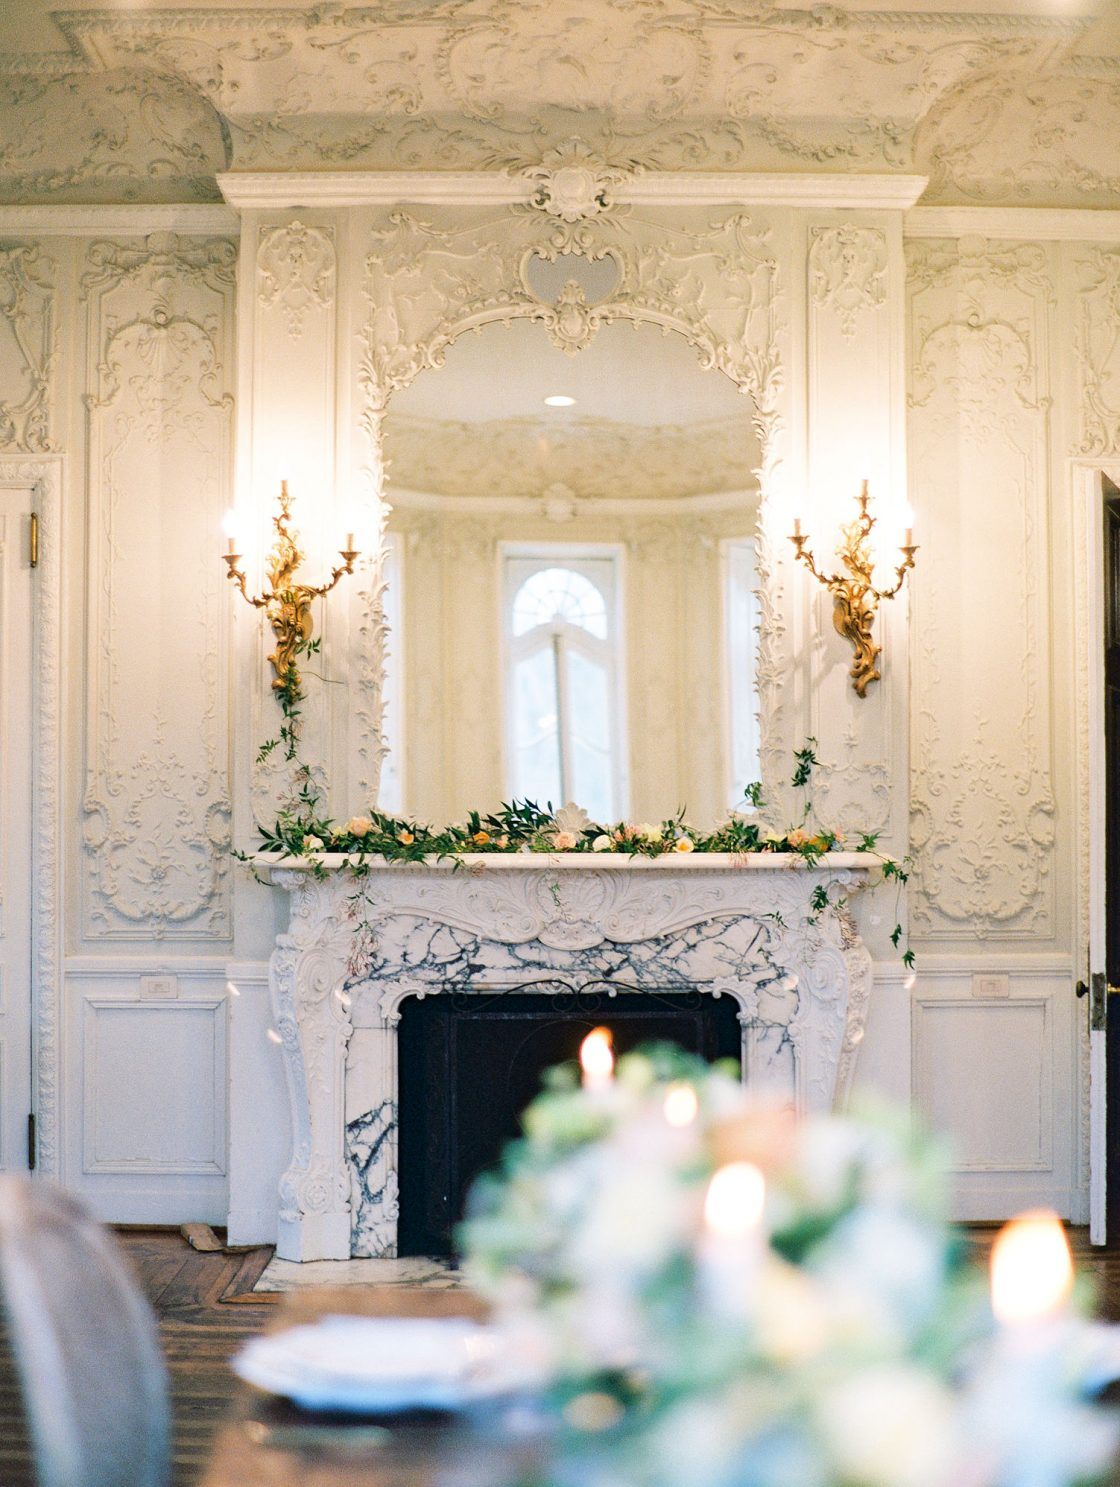 Romantic French Ballroom Wedding Reception